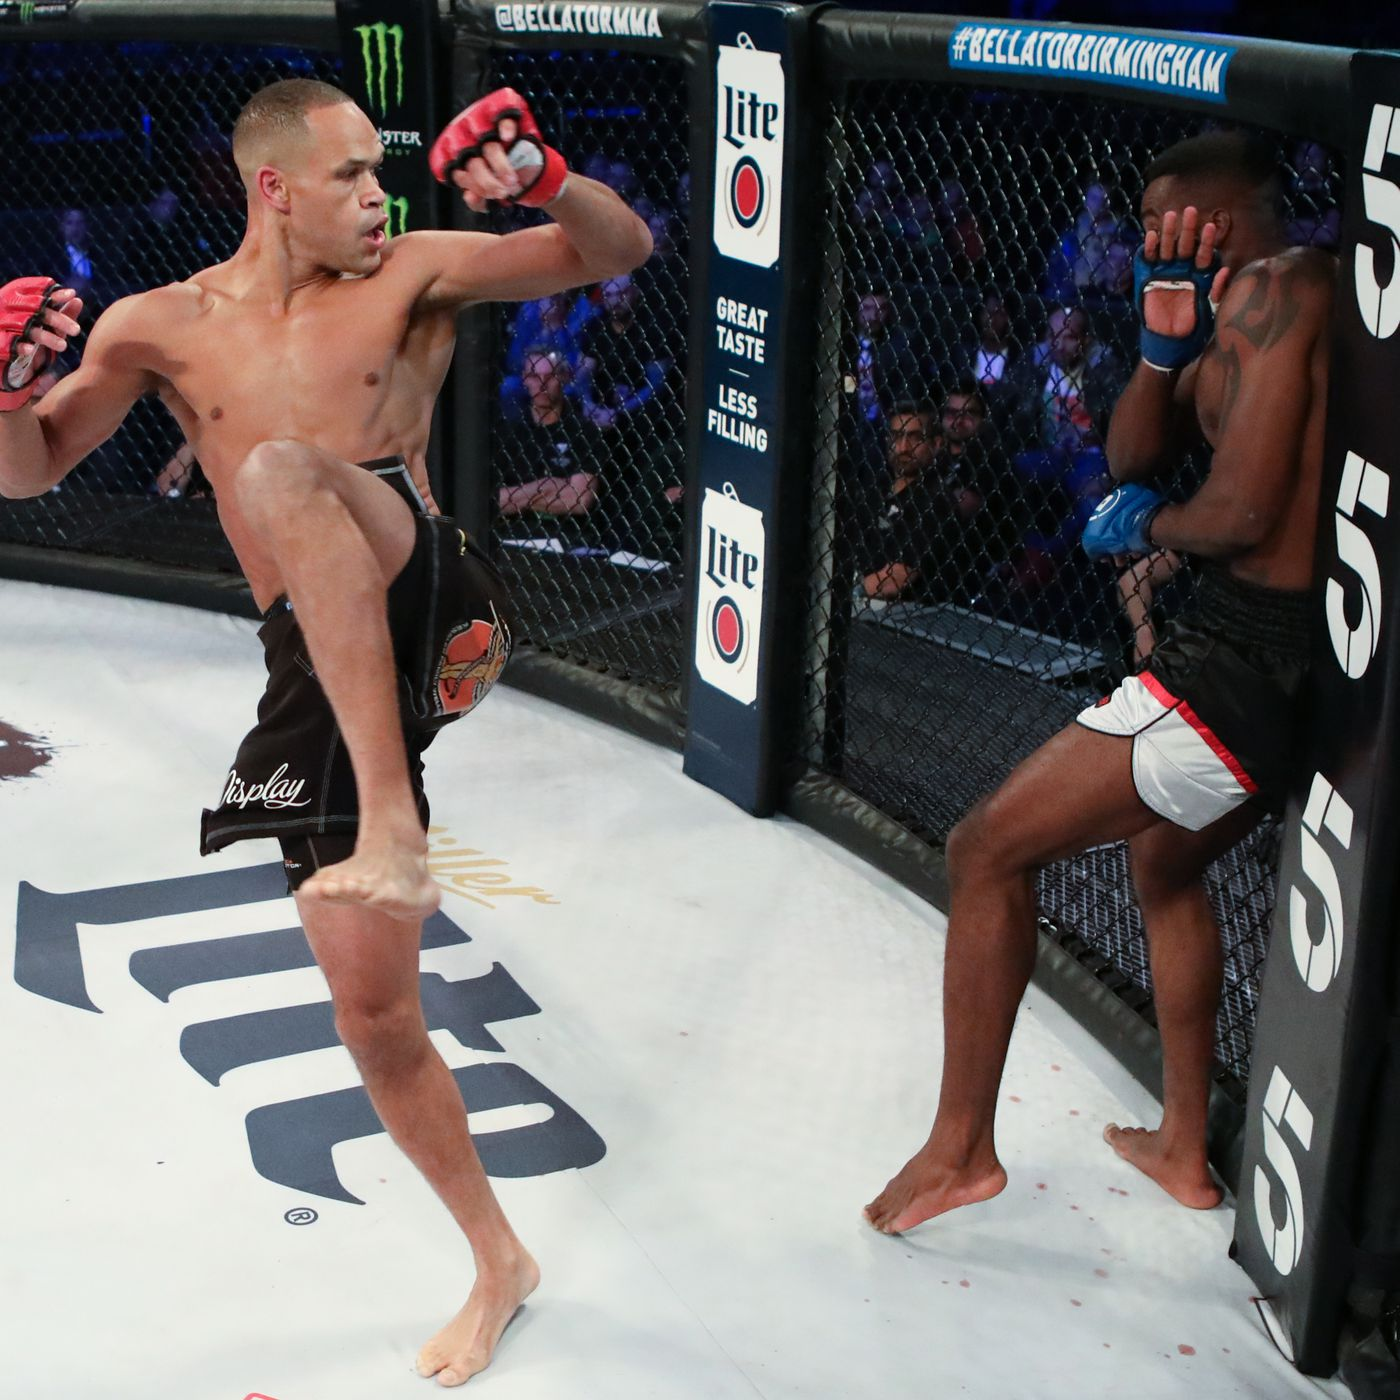 Raymond Daniels performing his 720 hook on Wilker Barros.